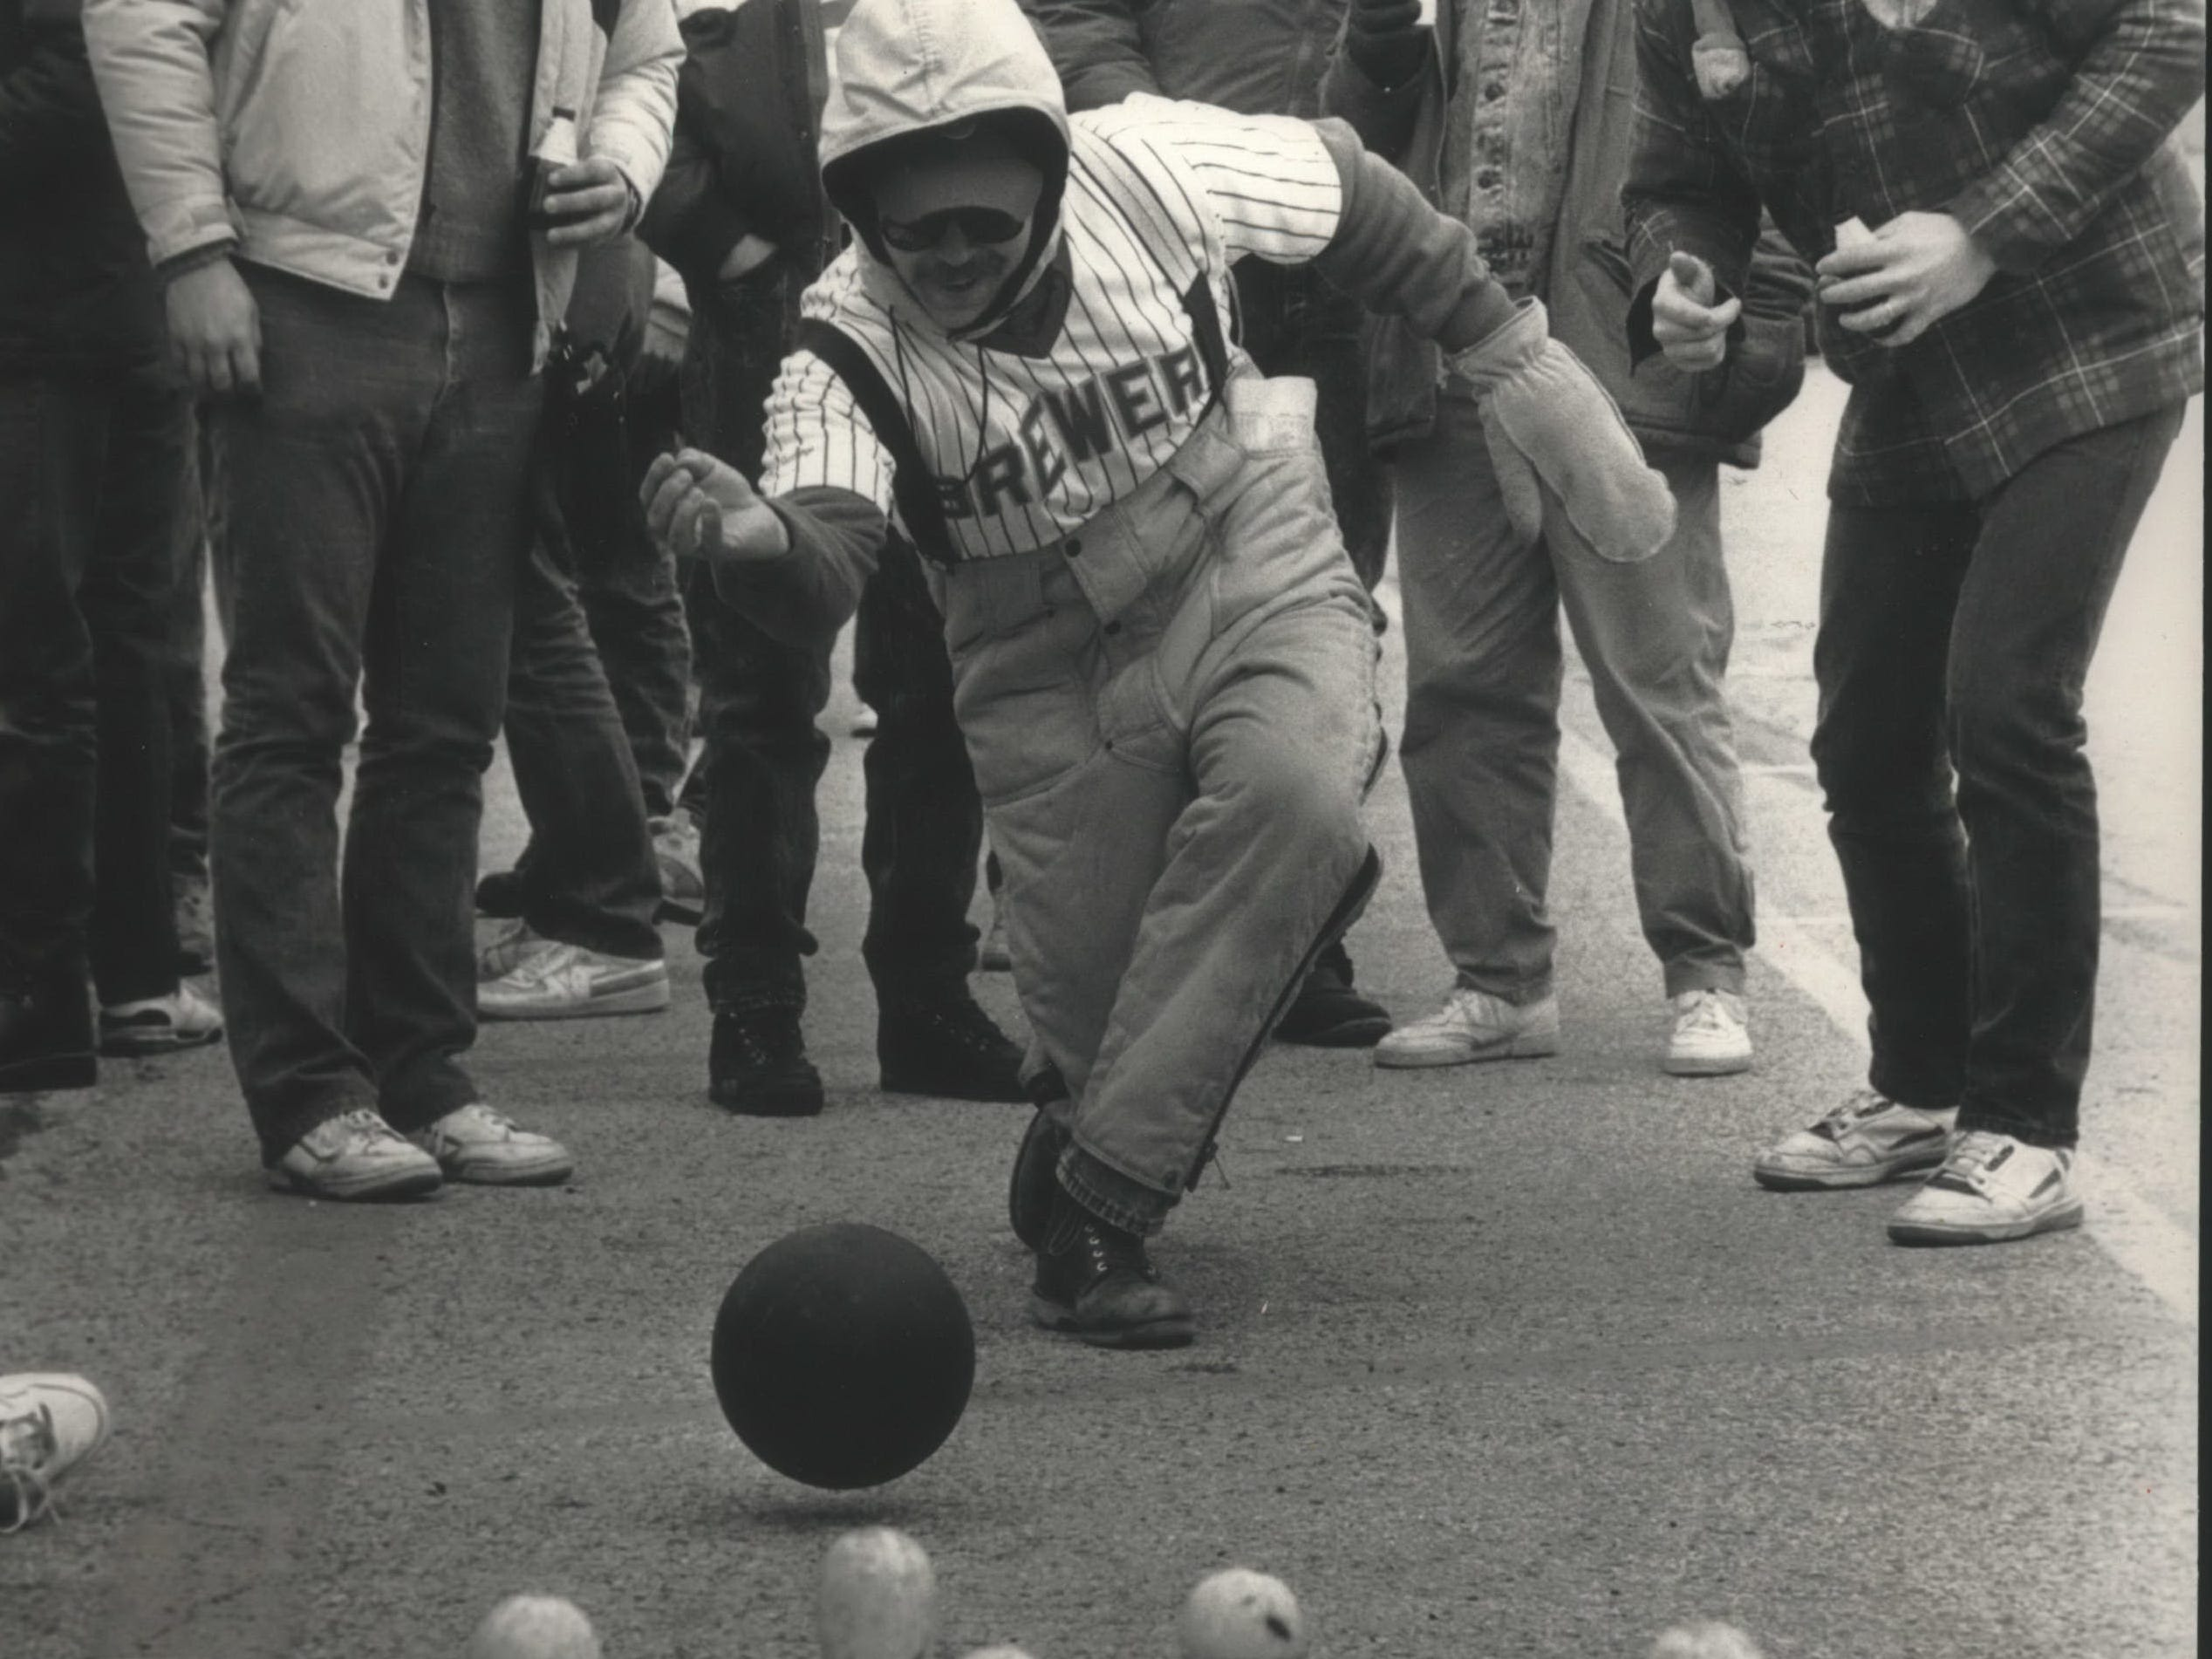 Mark Dolezar, in mittens, aims for the pins during some pregame bowling in the County Stadium parking lot on April 10, 1989, opening day of the 1989 baseball season. Temperatures at game time were just above the freezing mark. In the home opener, the Milwaukee Brewers lost to the Texas Rangers, 6-4, in 10 innings. This photo was published in the April 11, 1989, Milwaukee Sentinel.